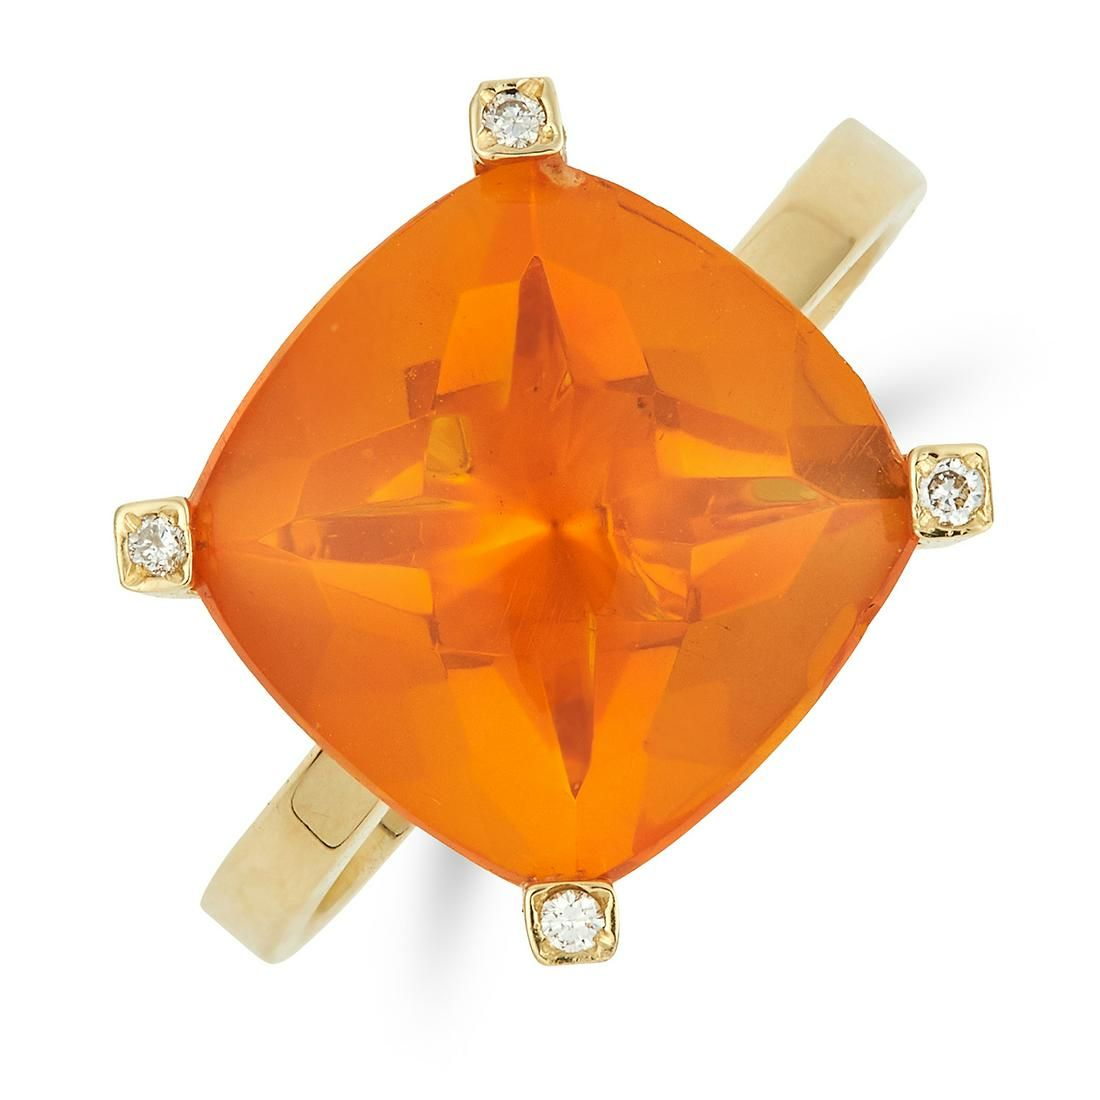 FIRE OPAL AND DIAMOND RING set with a cushion cut fire